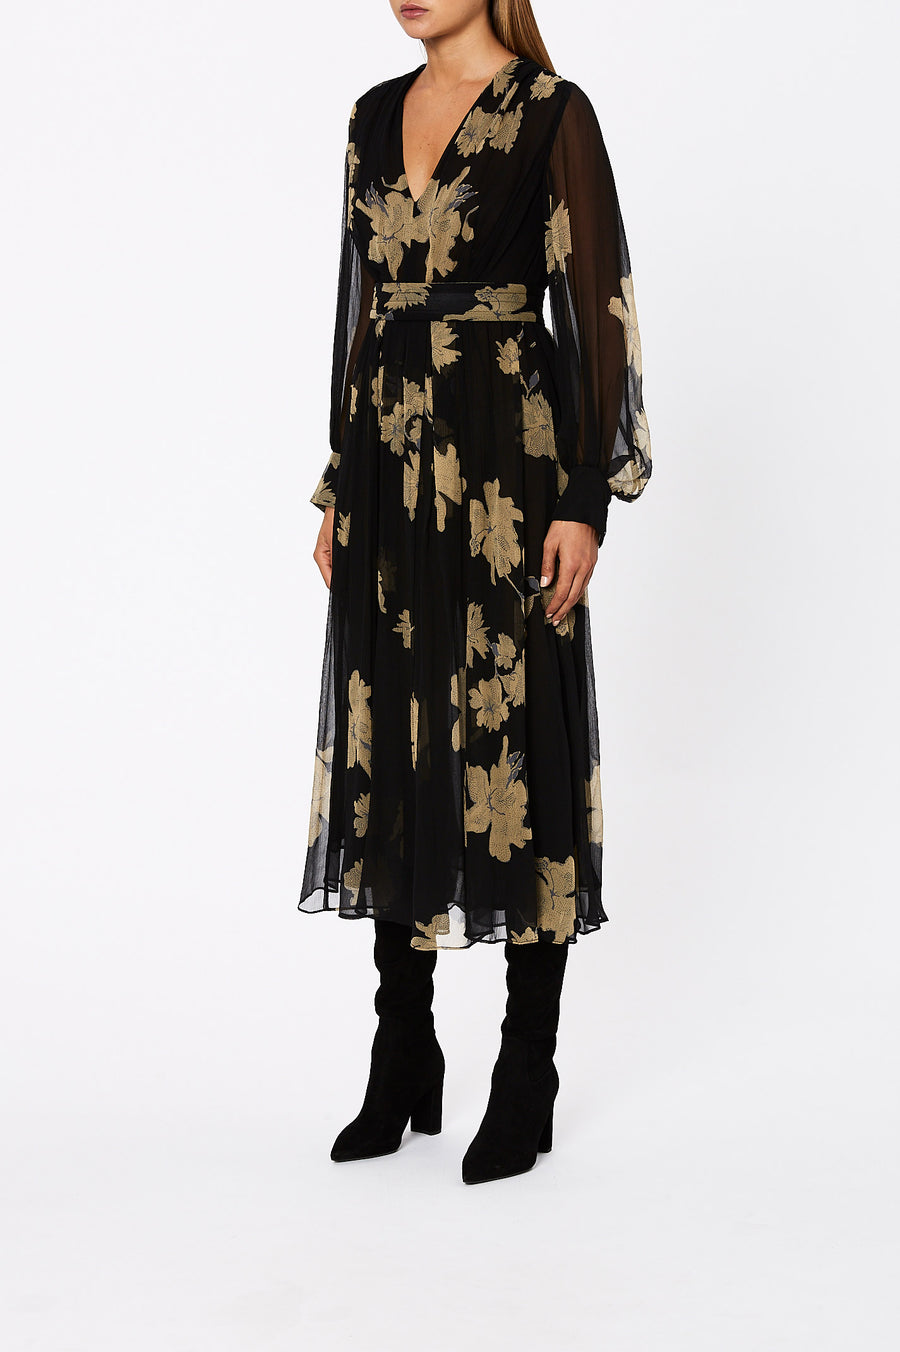 Silk GGT Floral Dress Black - Scanlan Theodore